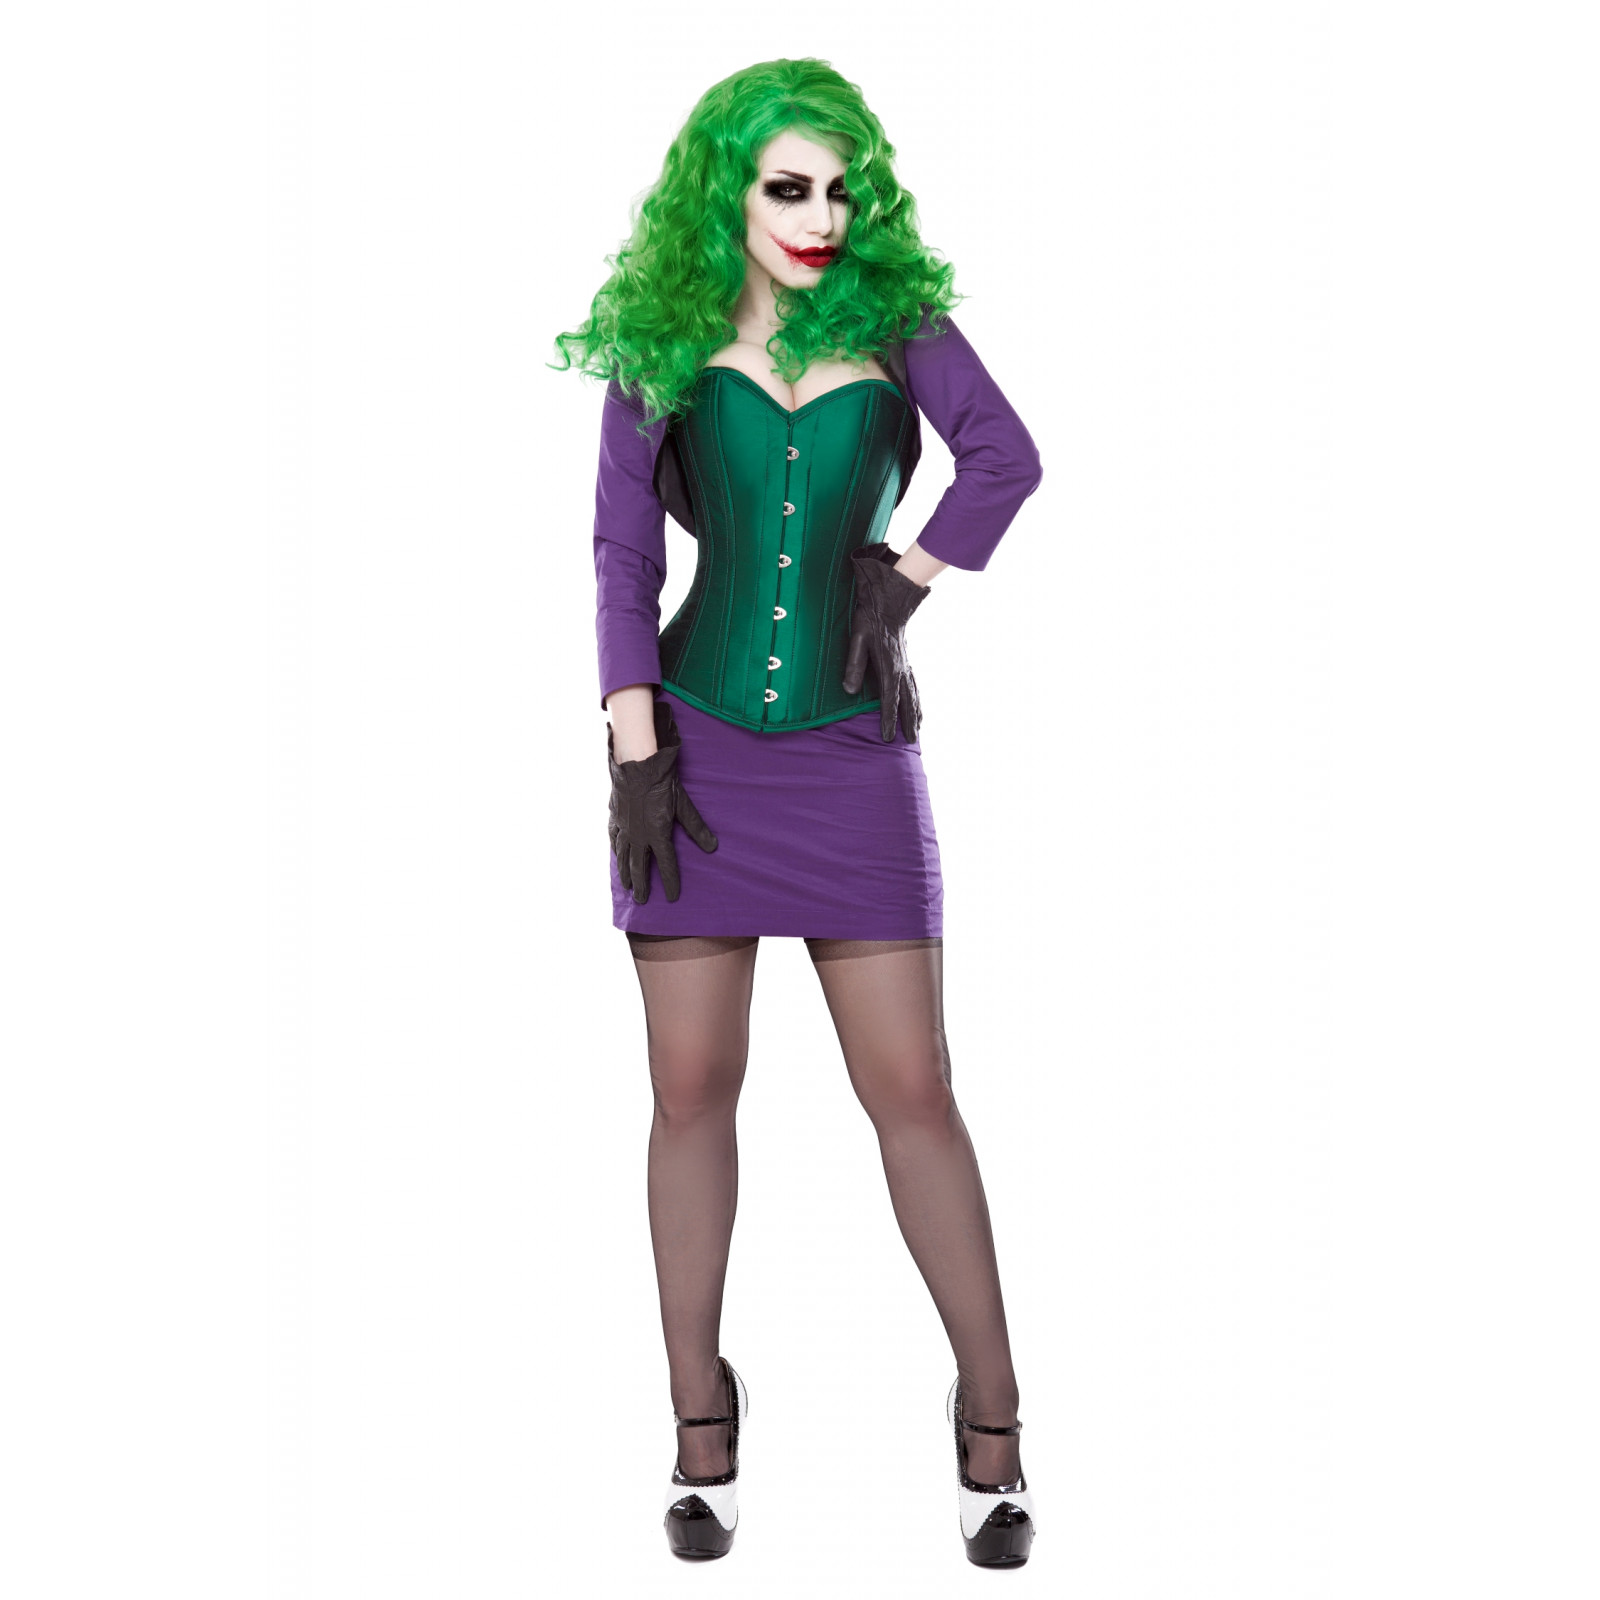 c76beb2681 Green Silk Corset With Purple Bolero   Skirt Outfit